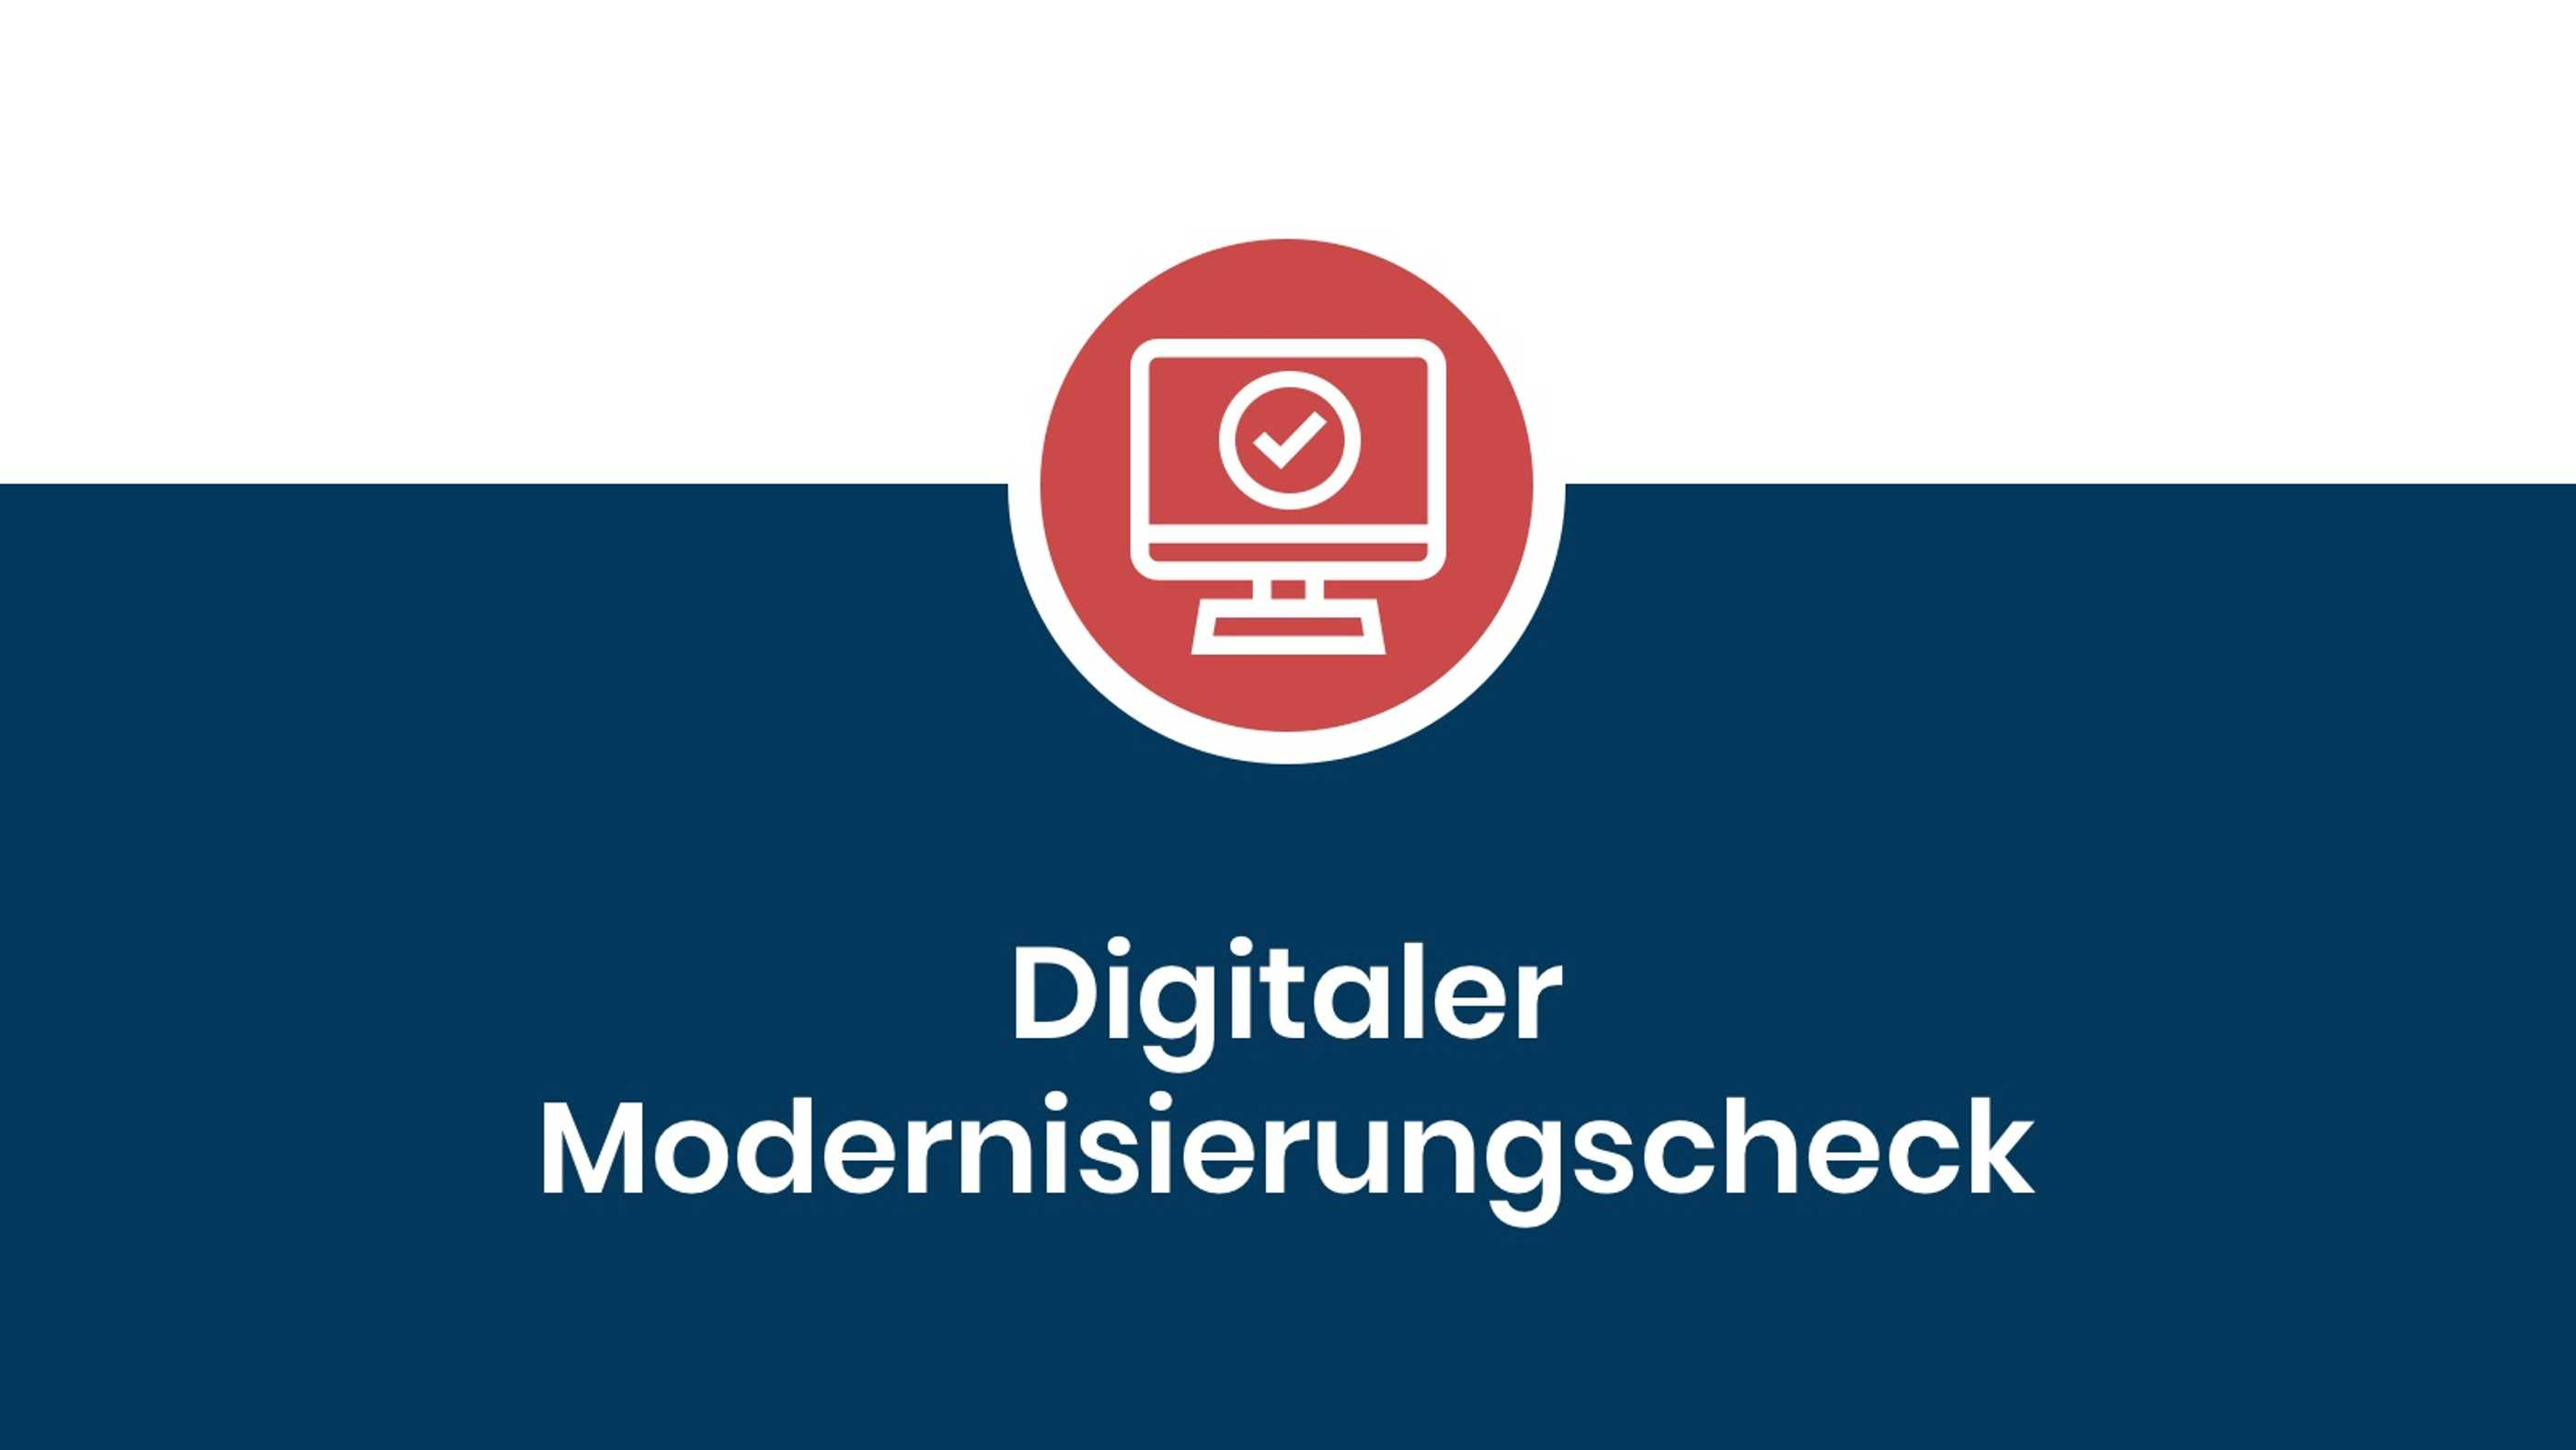 Digitaler Modernisierungscheck